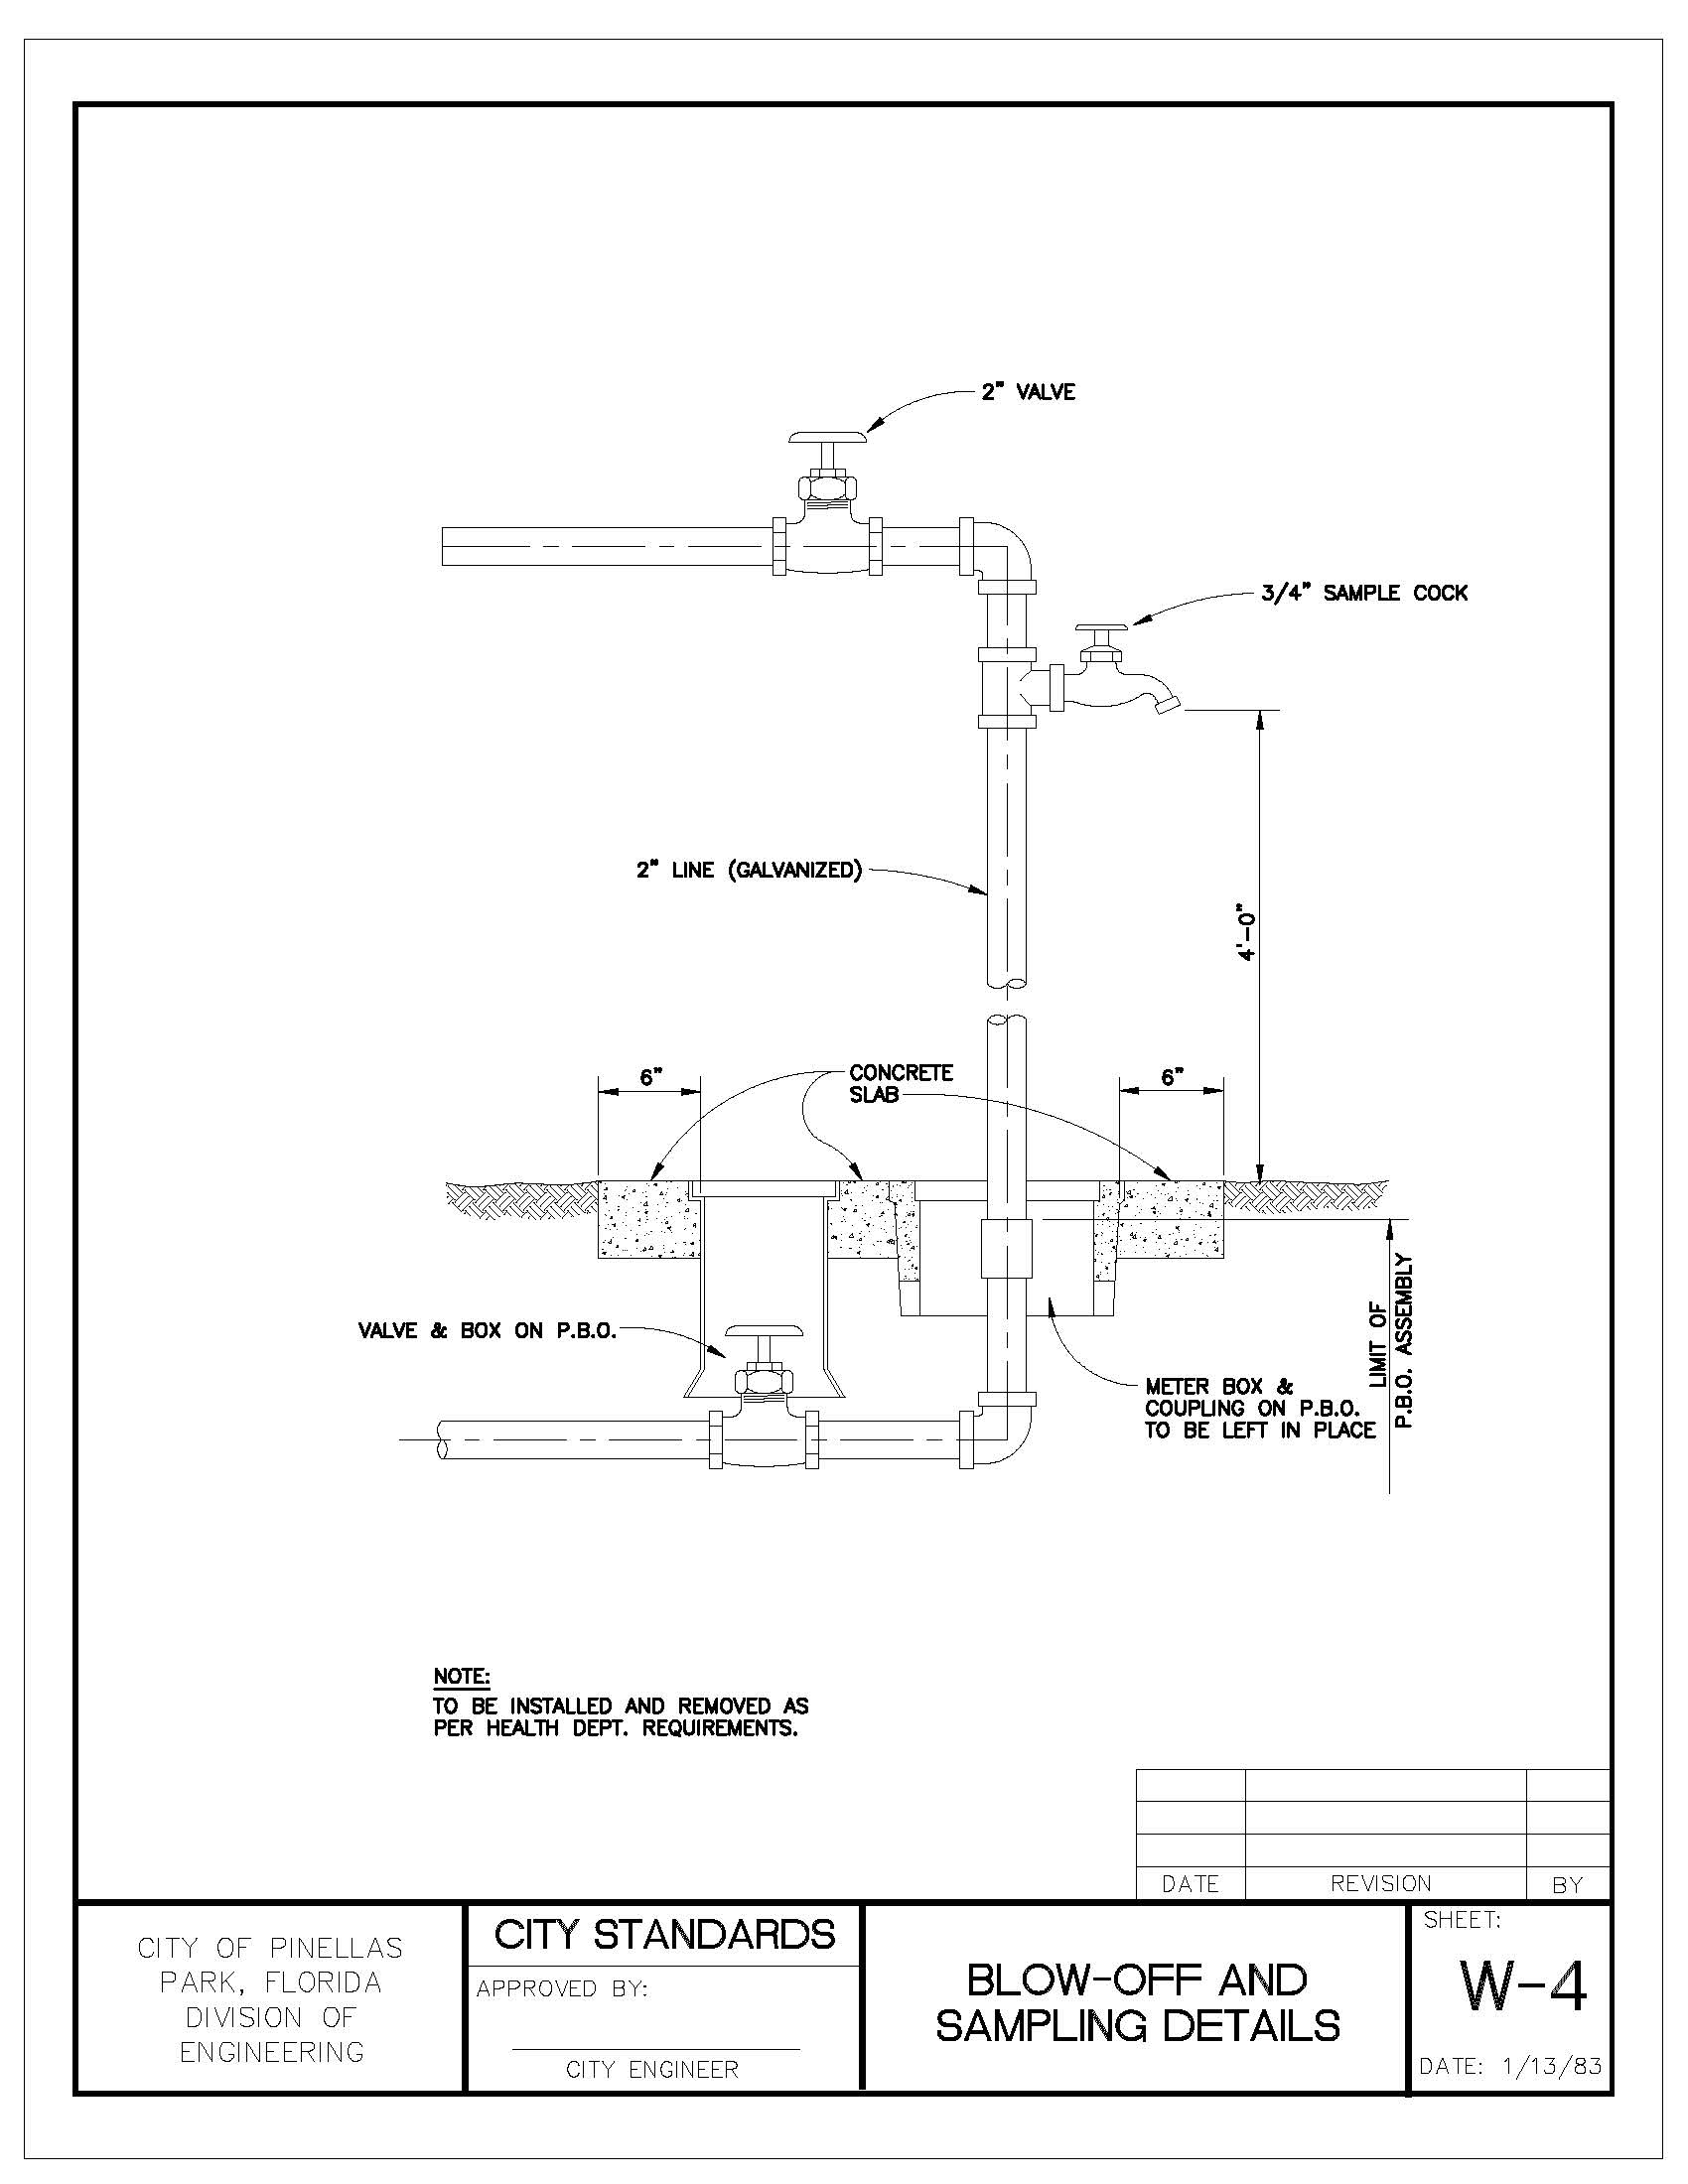 Engineering Manual v5_201908121127291138_Page_078 blow off and sampling details